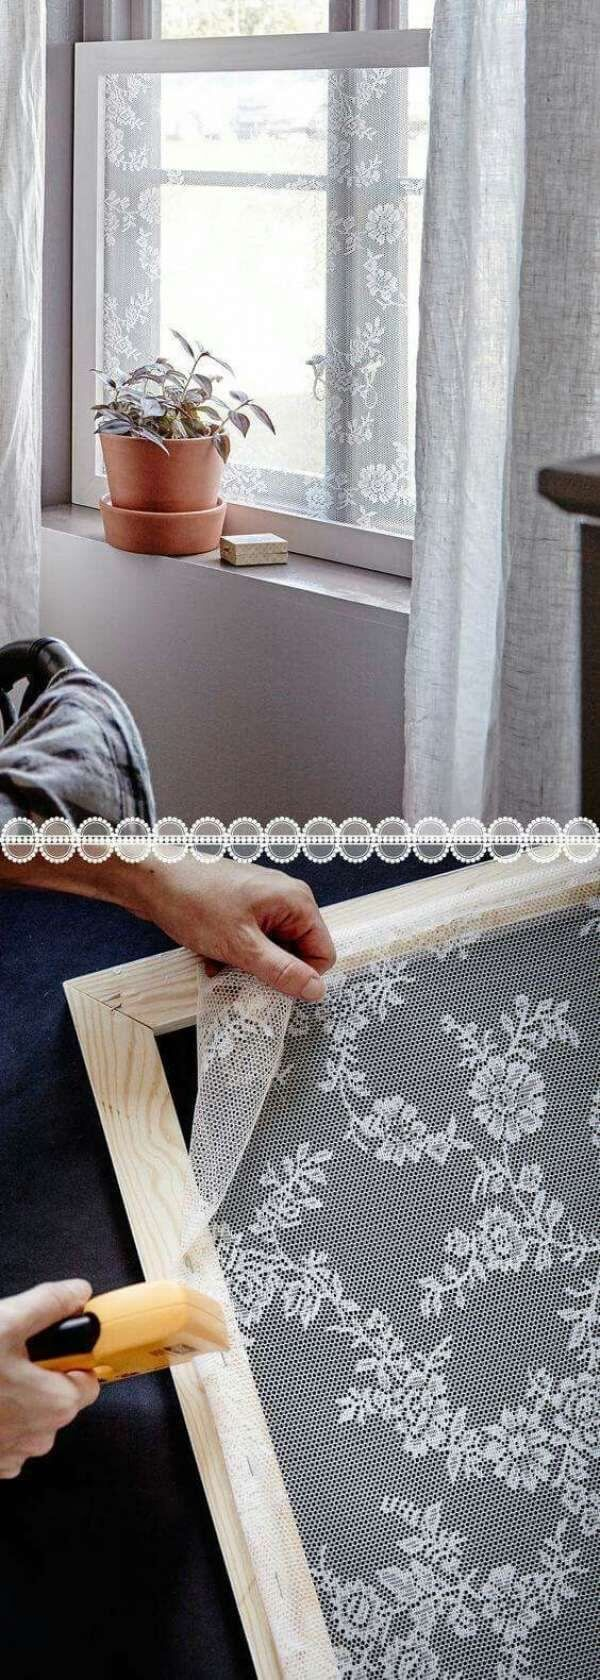 35+ DIY Window Treatment Ideas That Will Transform Your Home